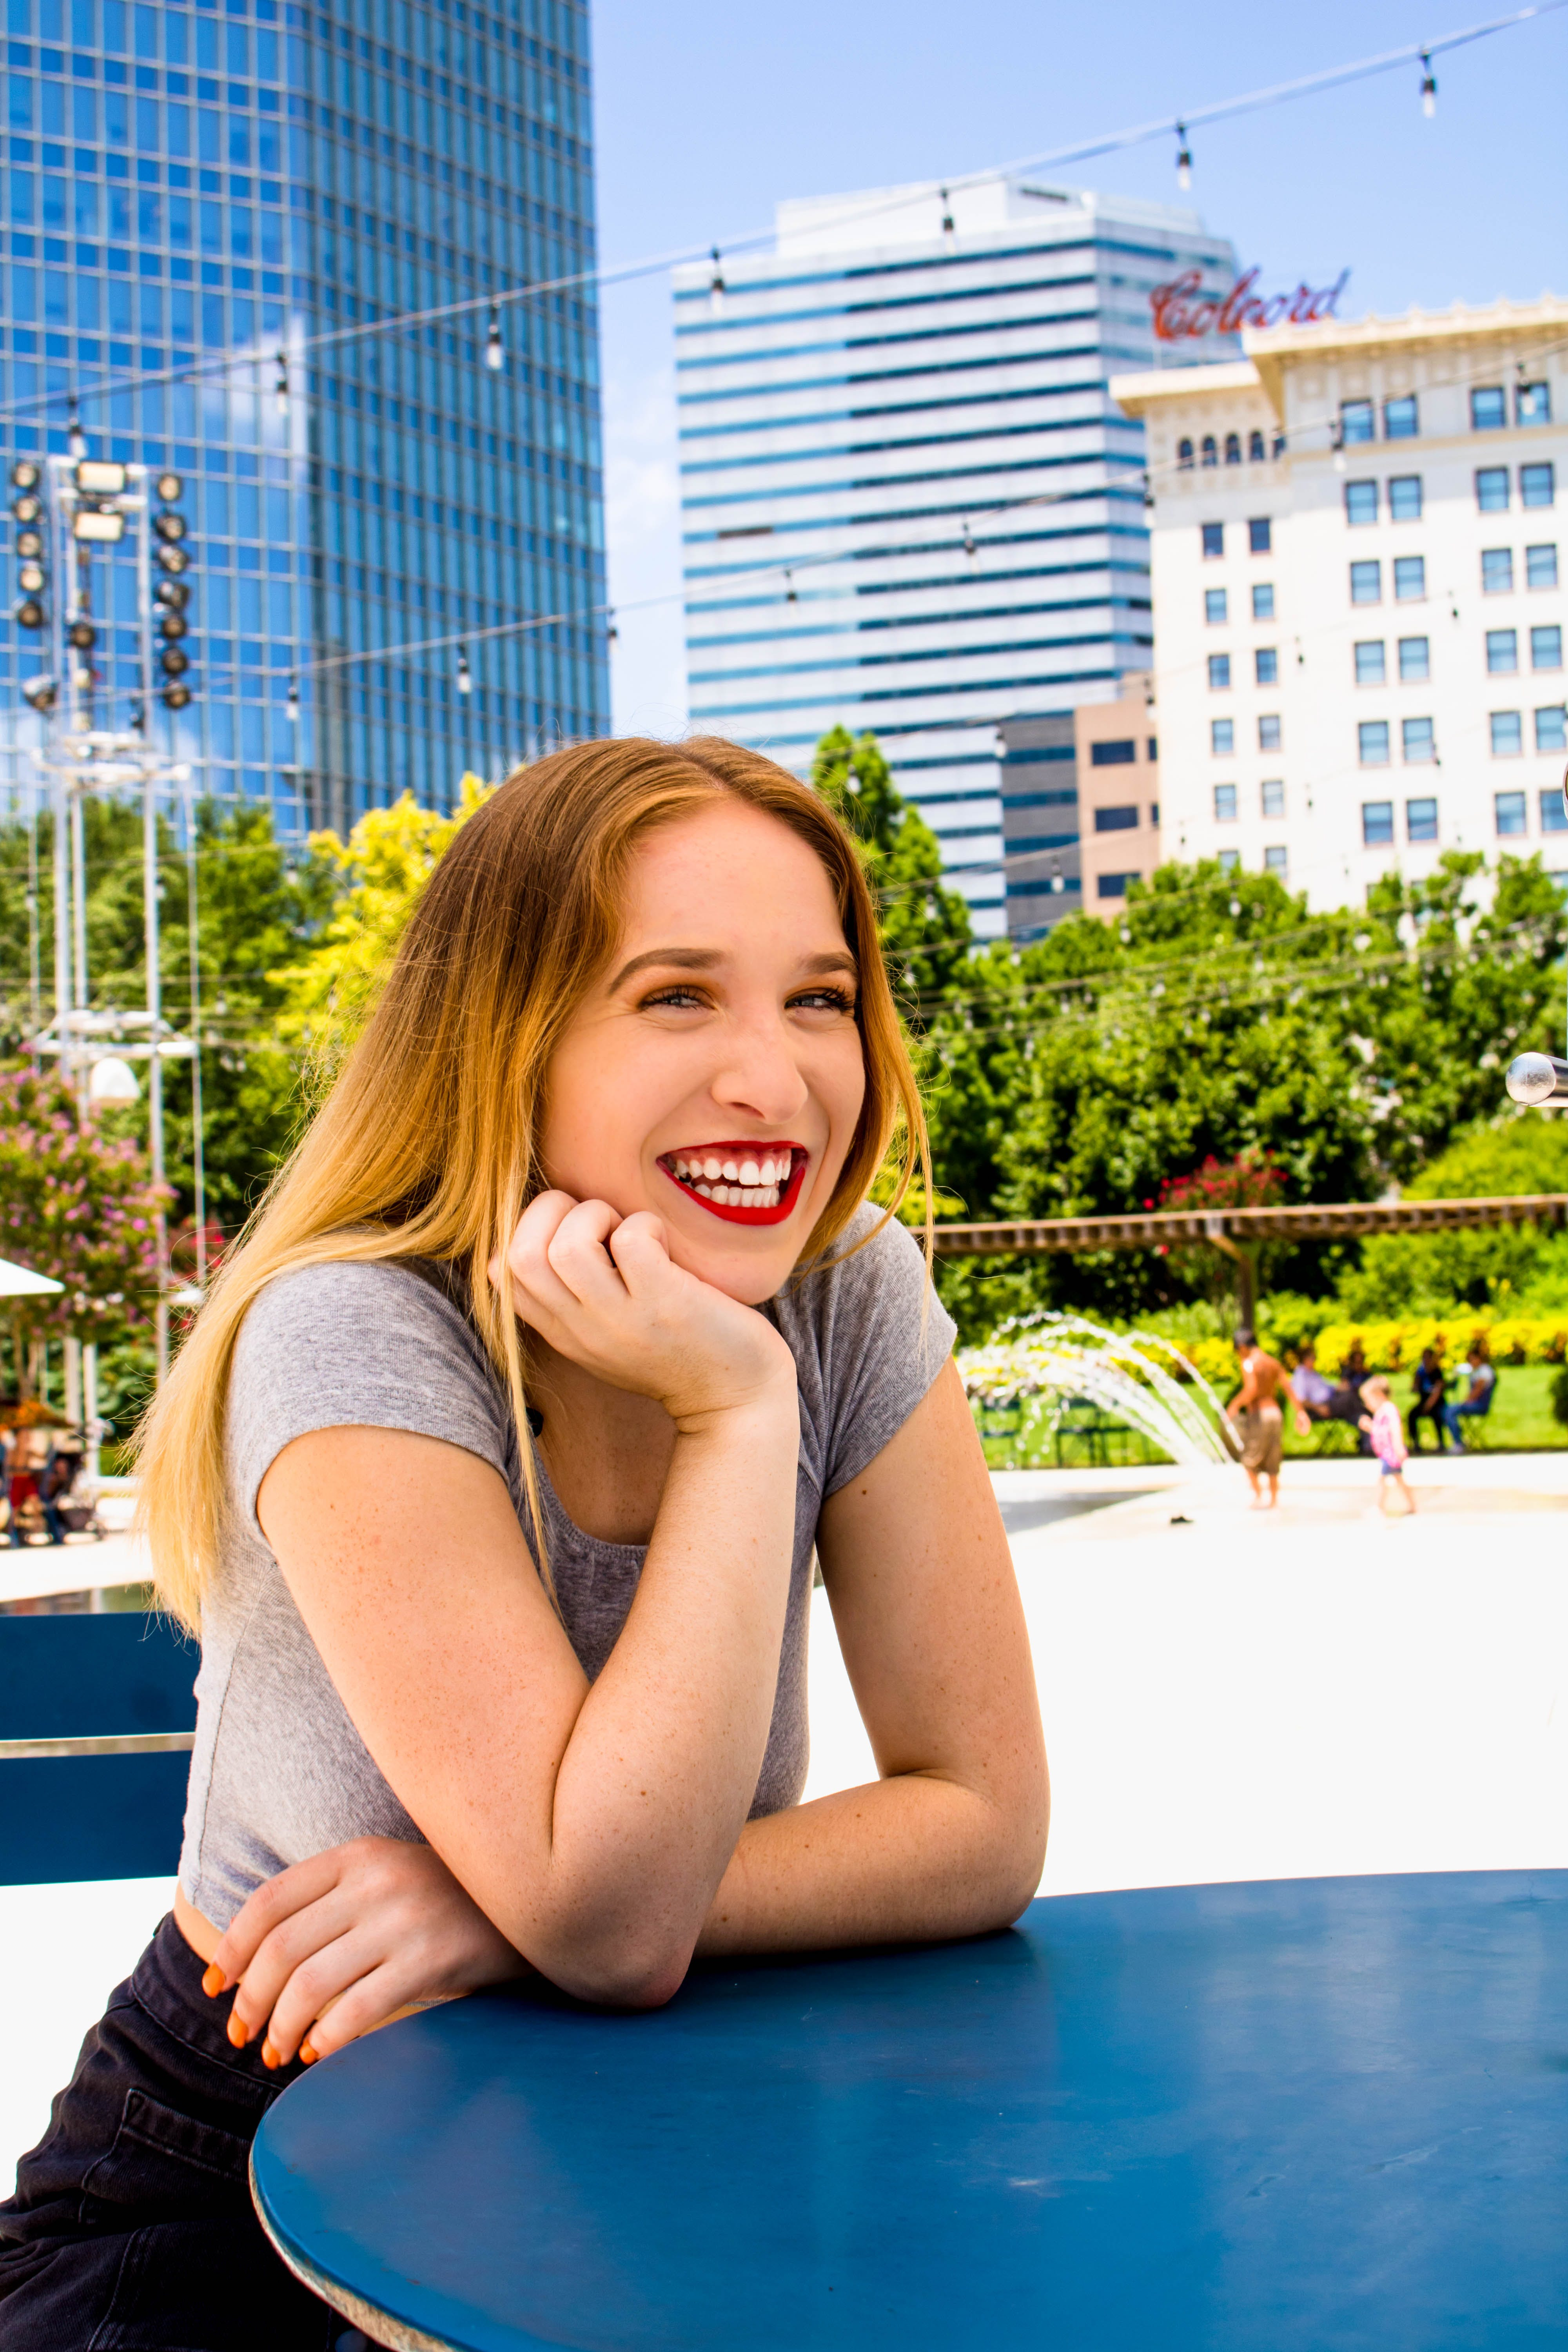 Woman Sitting in Front of Blue Table While Smiling on Camera